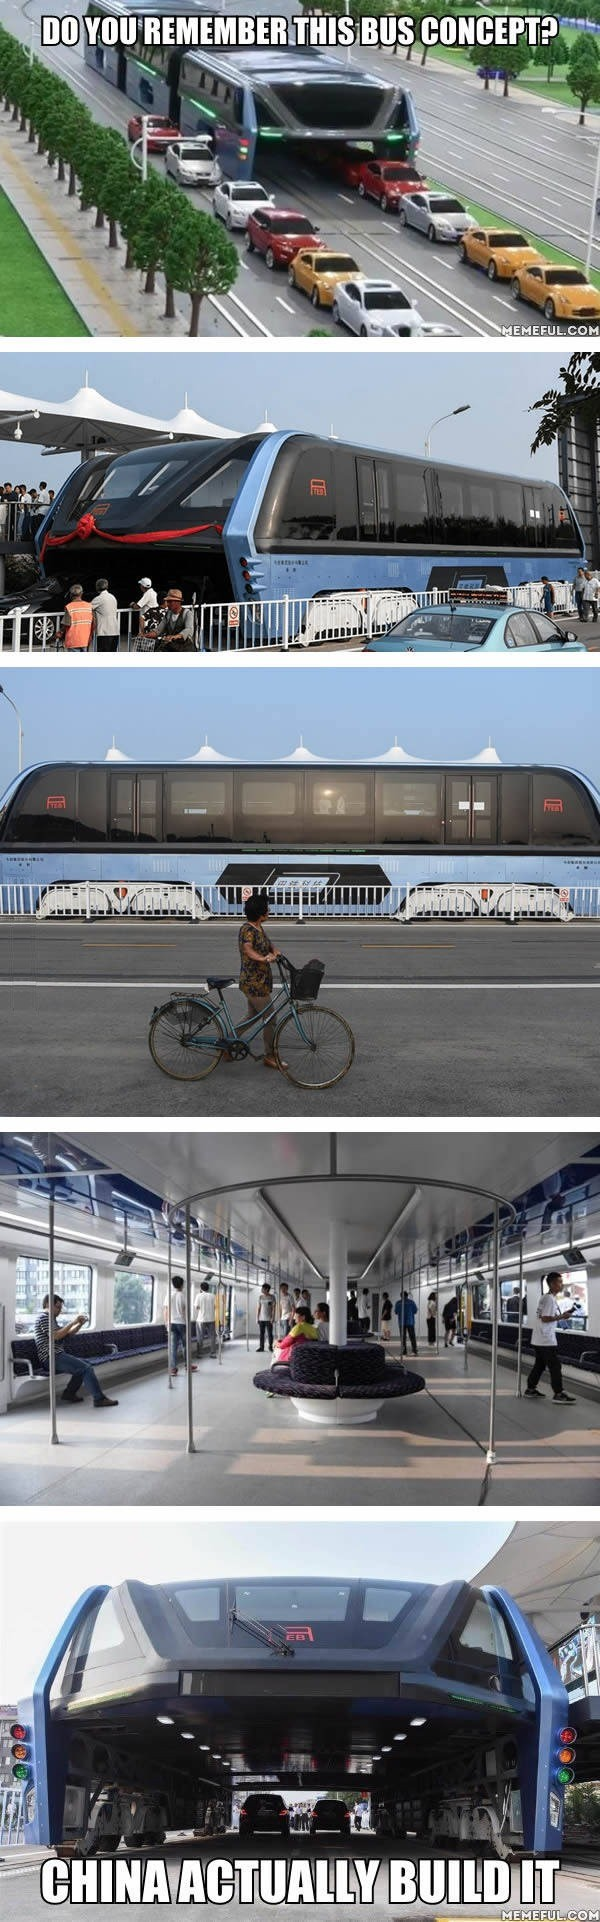 Buss. .. >China built it So it's going to be seen exploding on LiveLeak in a month